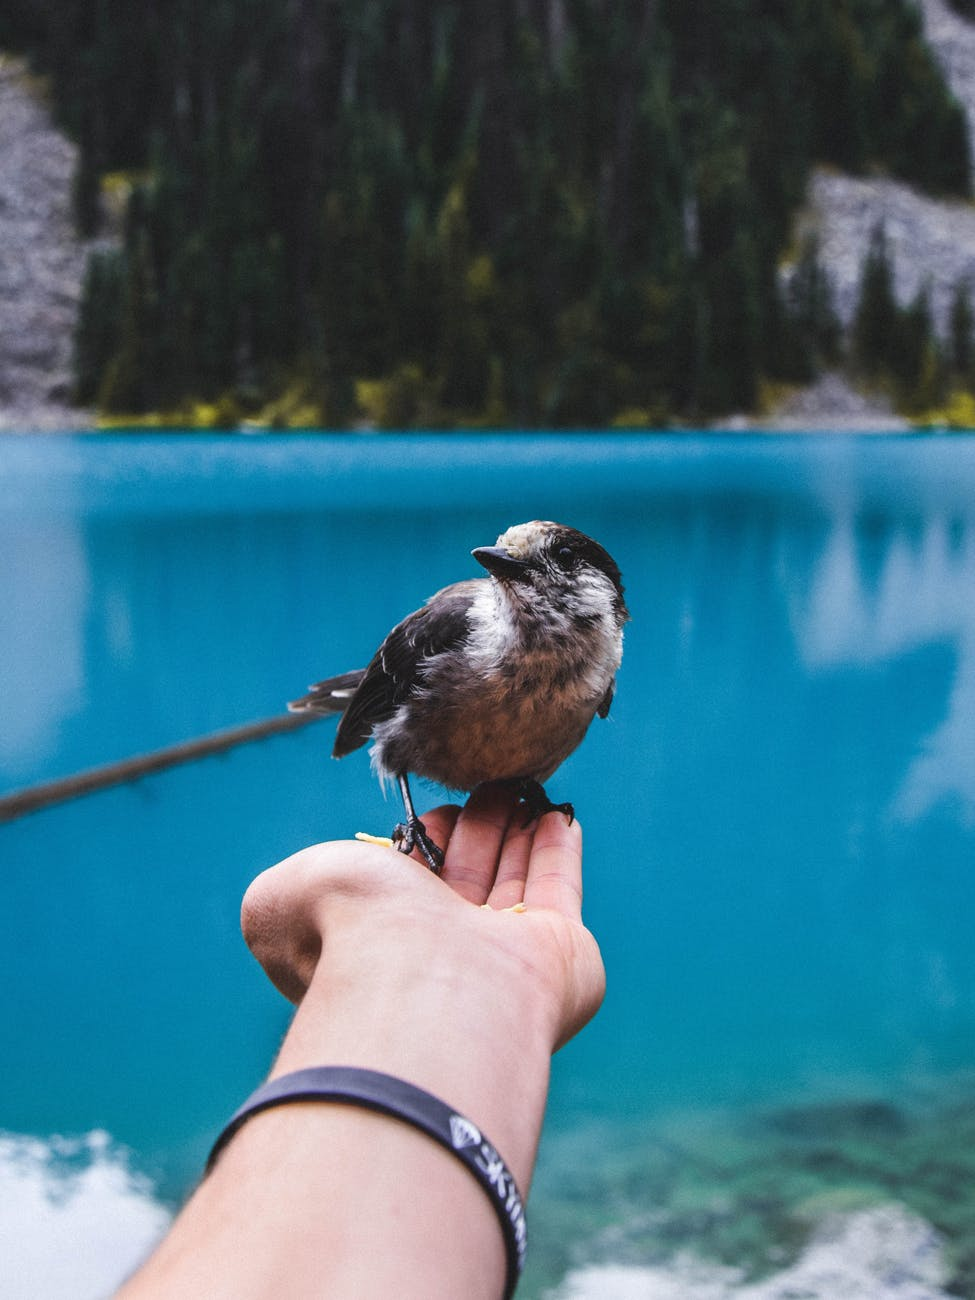 bird perched on person s hand